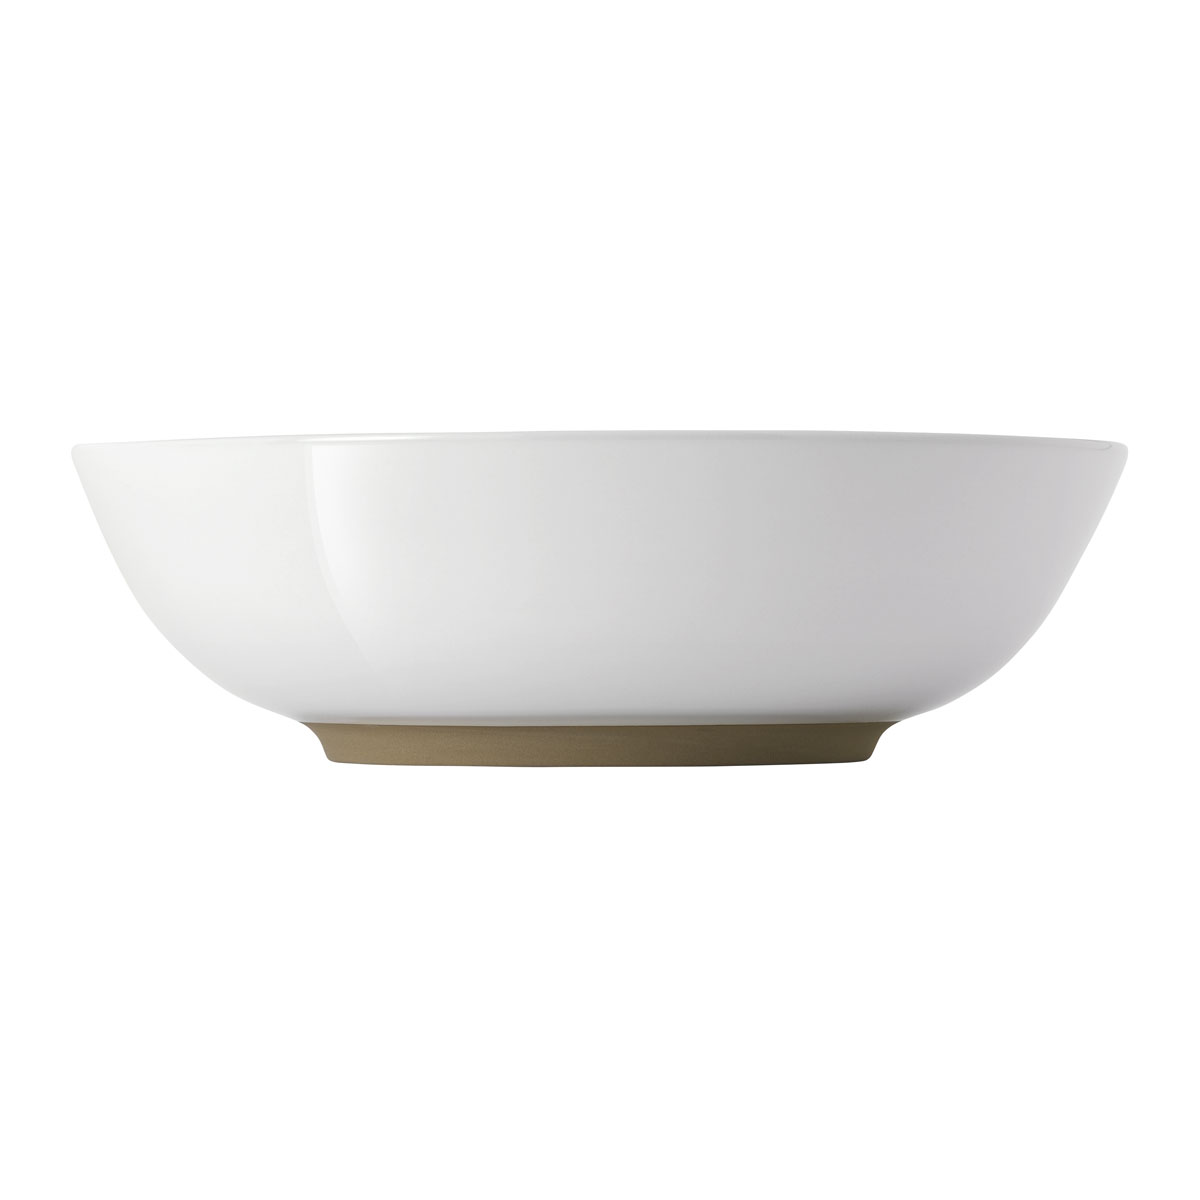 Royal Doulton Barber and Osgerby Olio White Pasta Bowl 8.6""